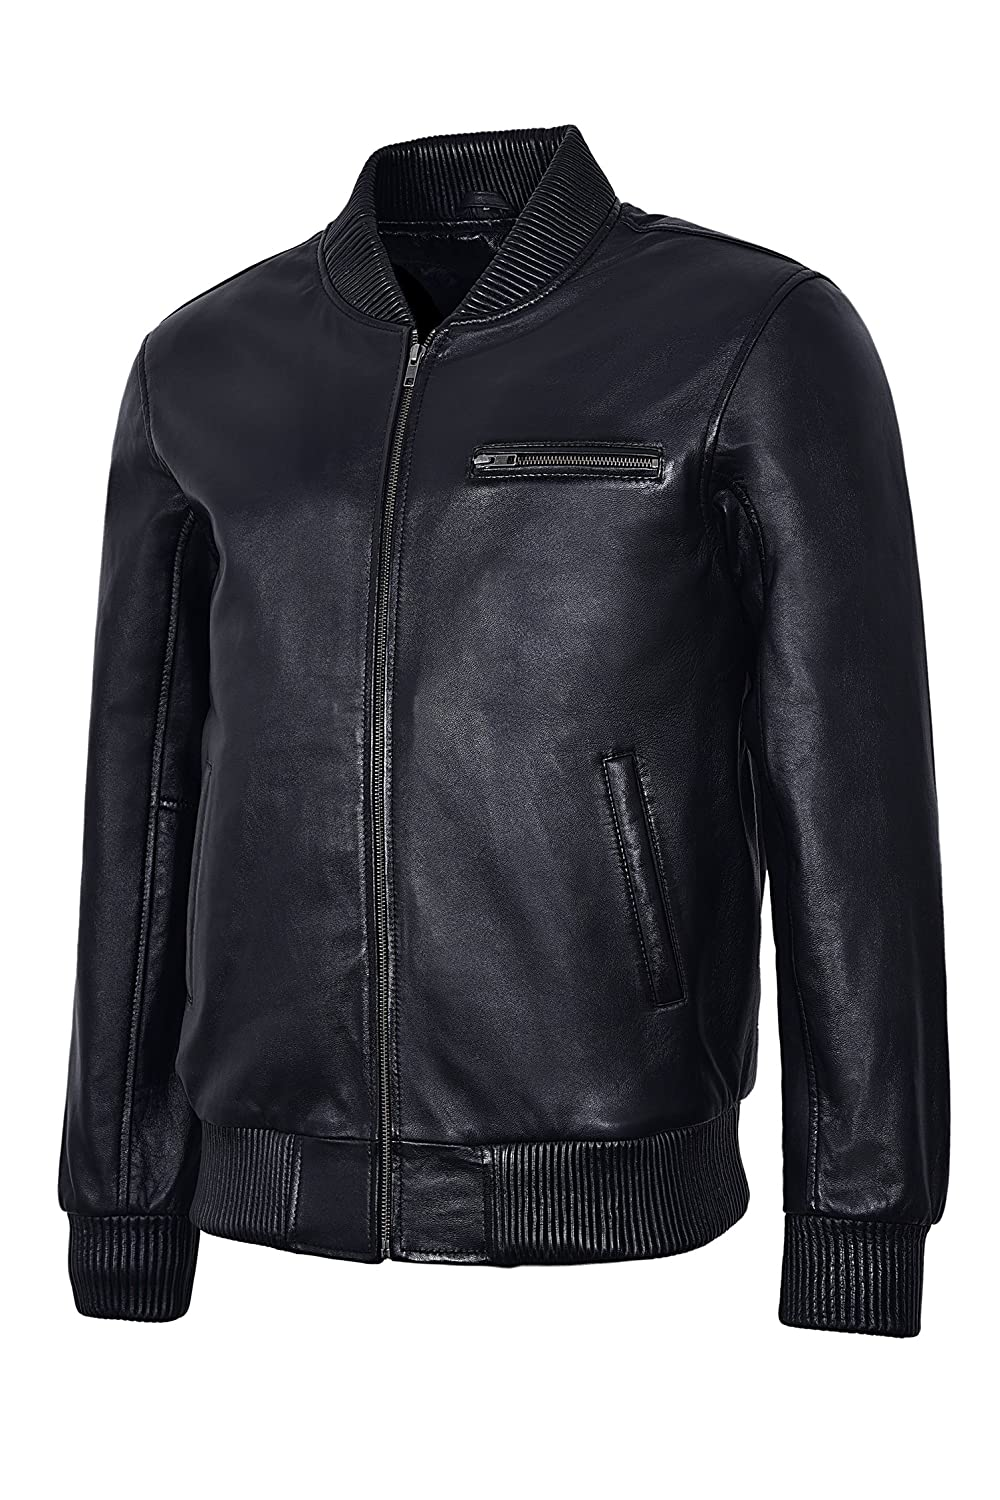 263937982 Smart Range Men's New Bomber 70'S Street Inspired Black Retro ...